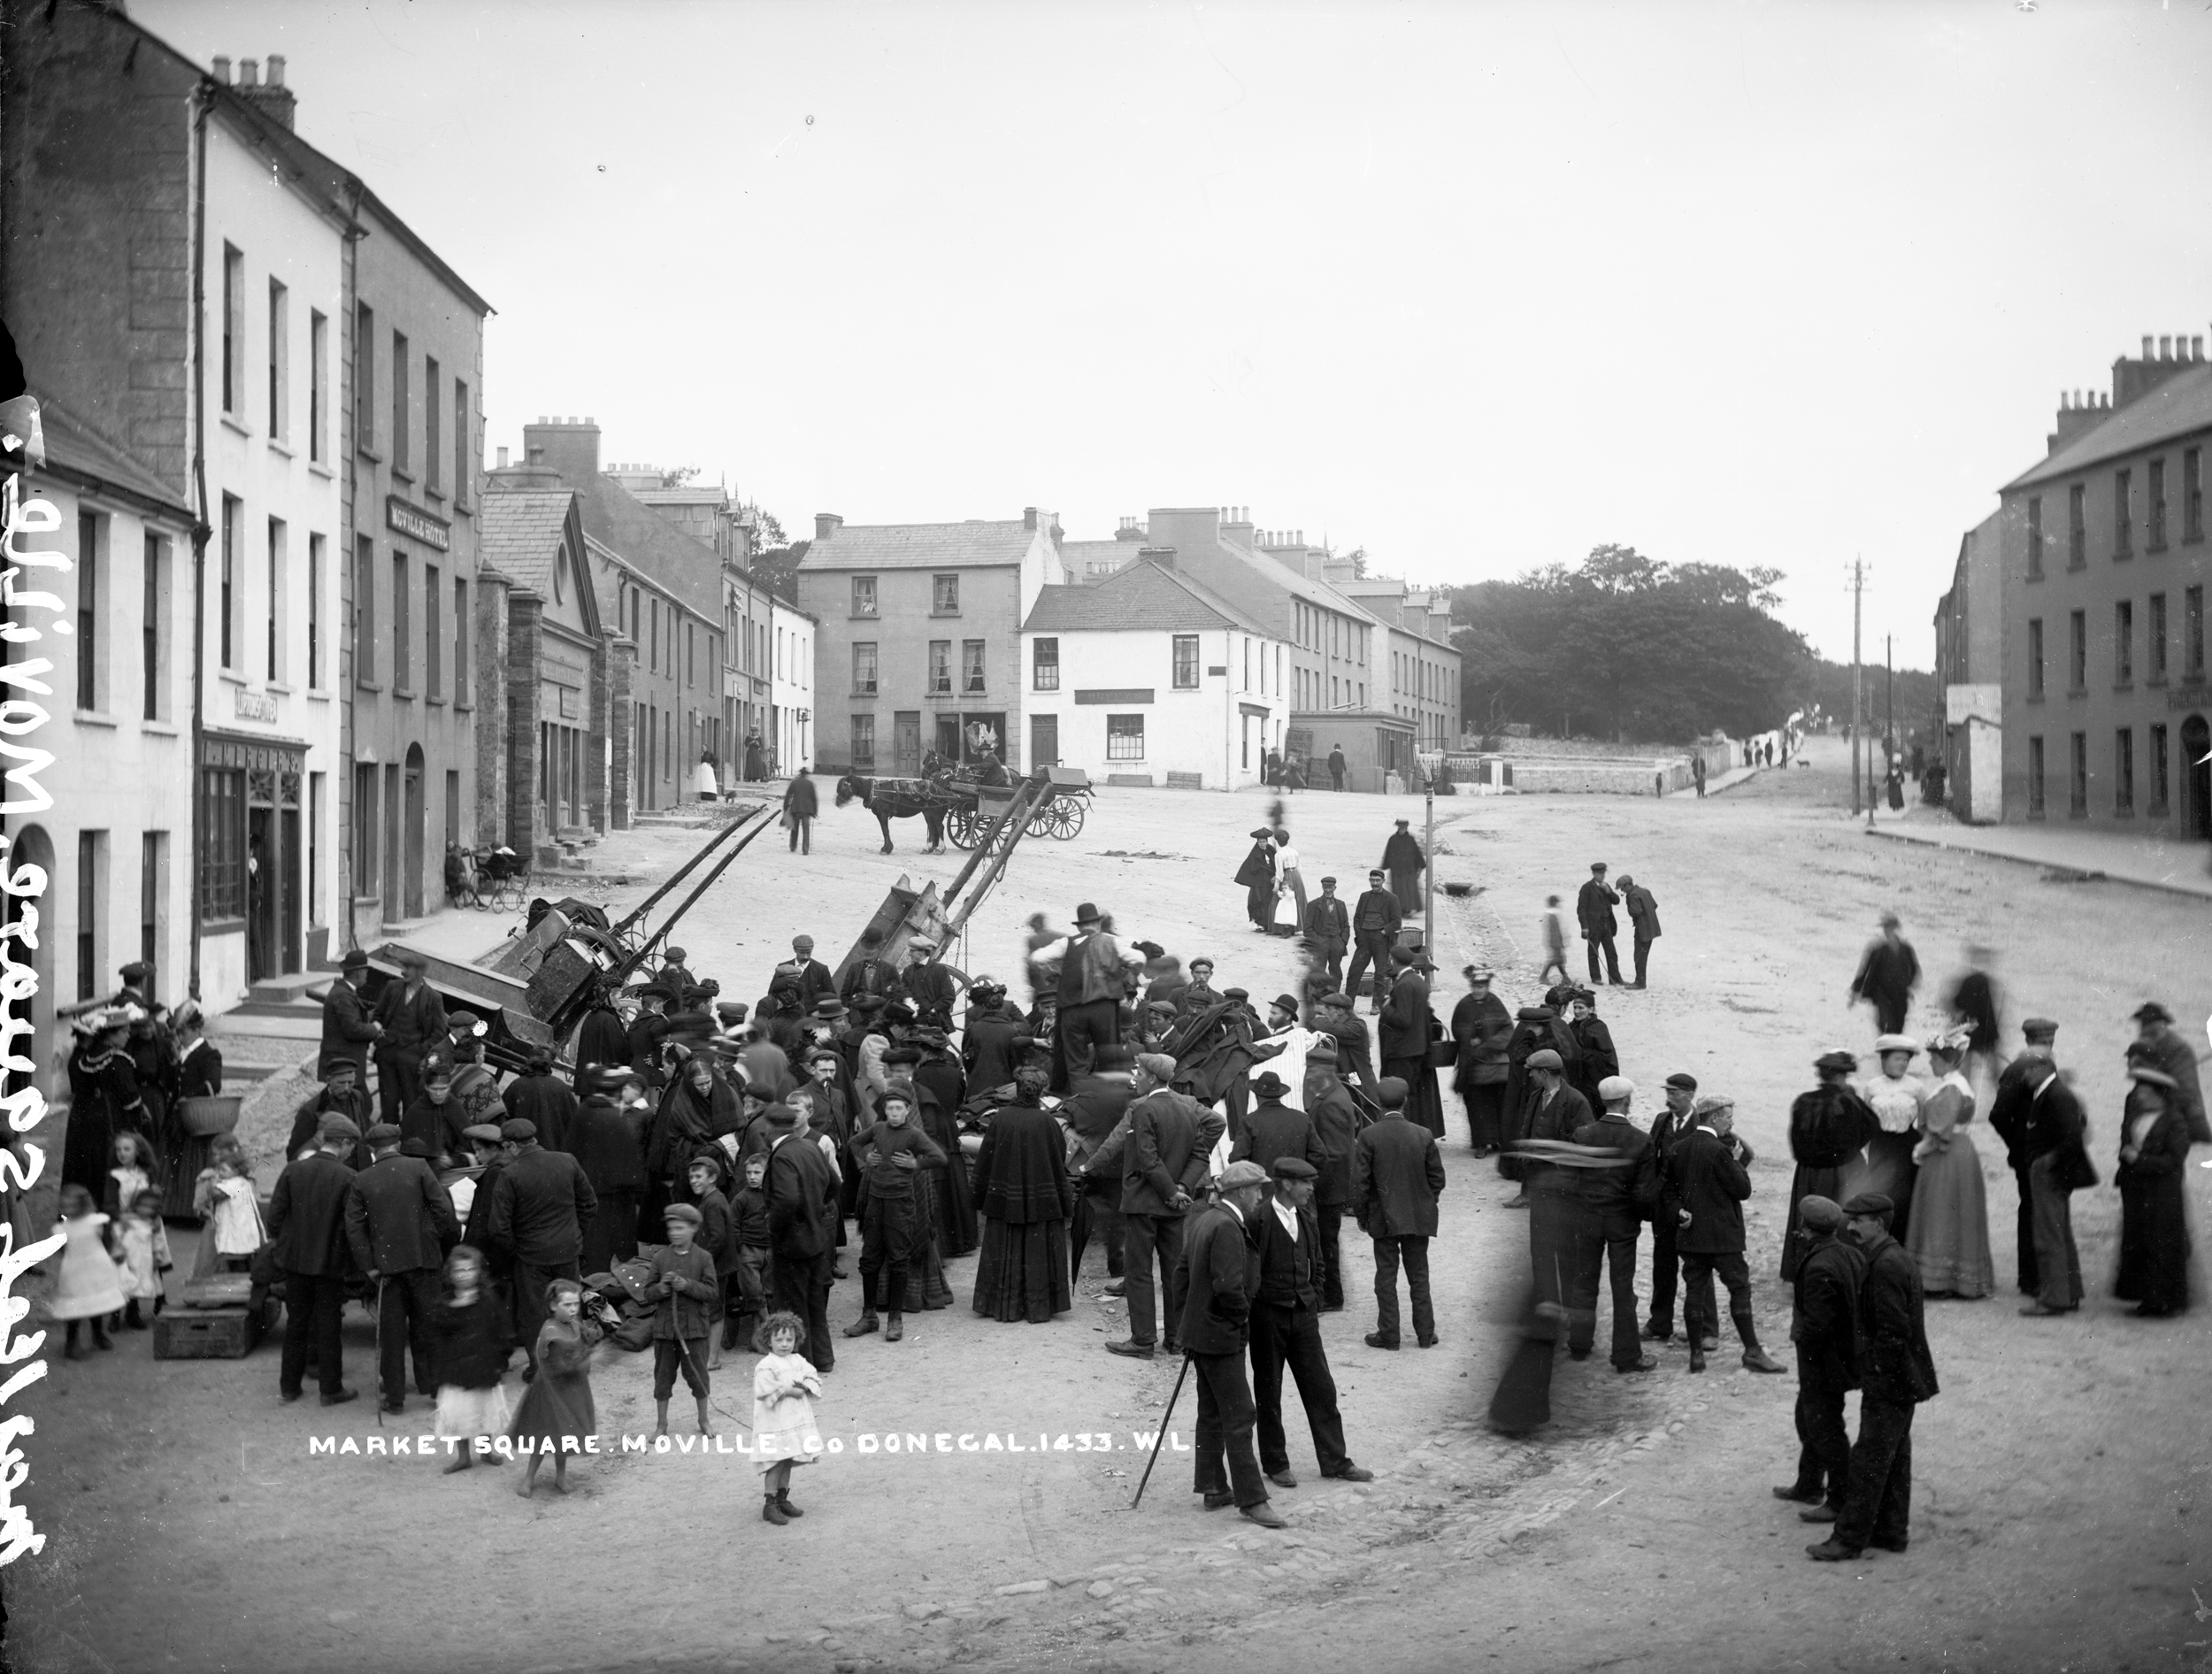 File:Market Square, Moville, Co. Donegal (7534144708).jpg ...